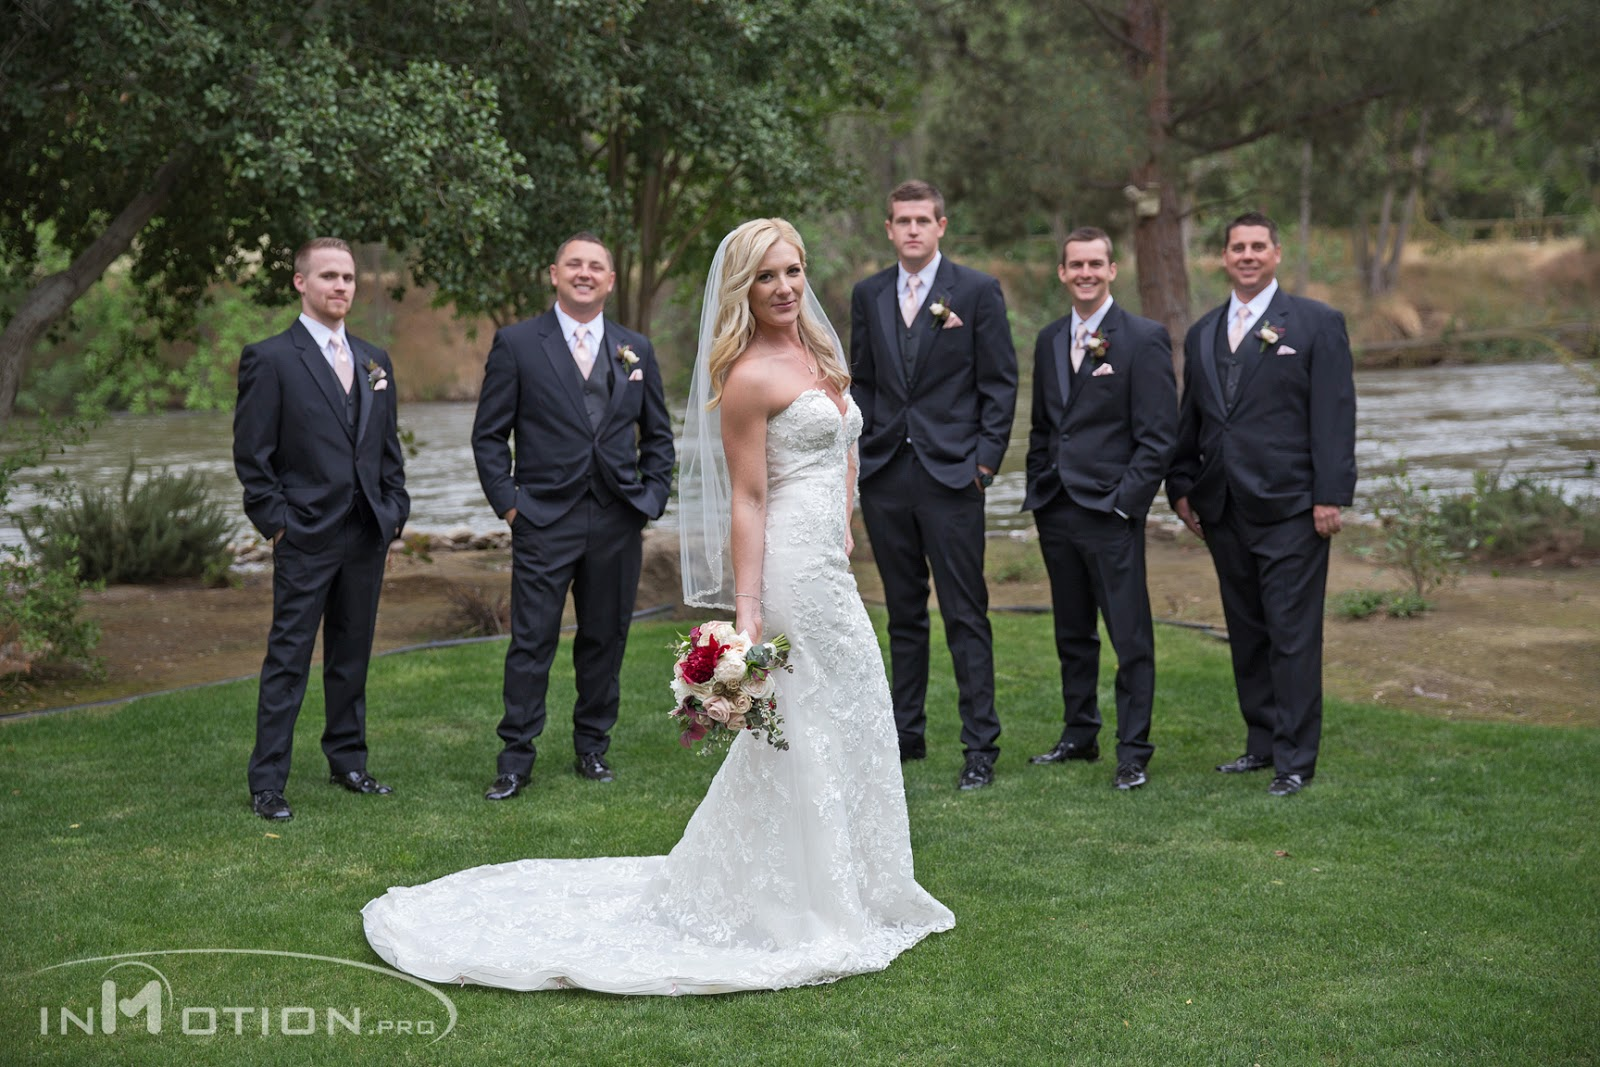 Carissa And Jason S Wedding Jeh Ranch Bakersfield Ca May 6